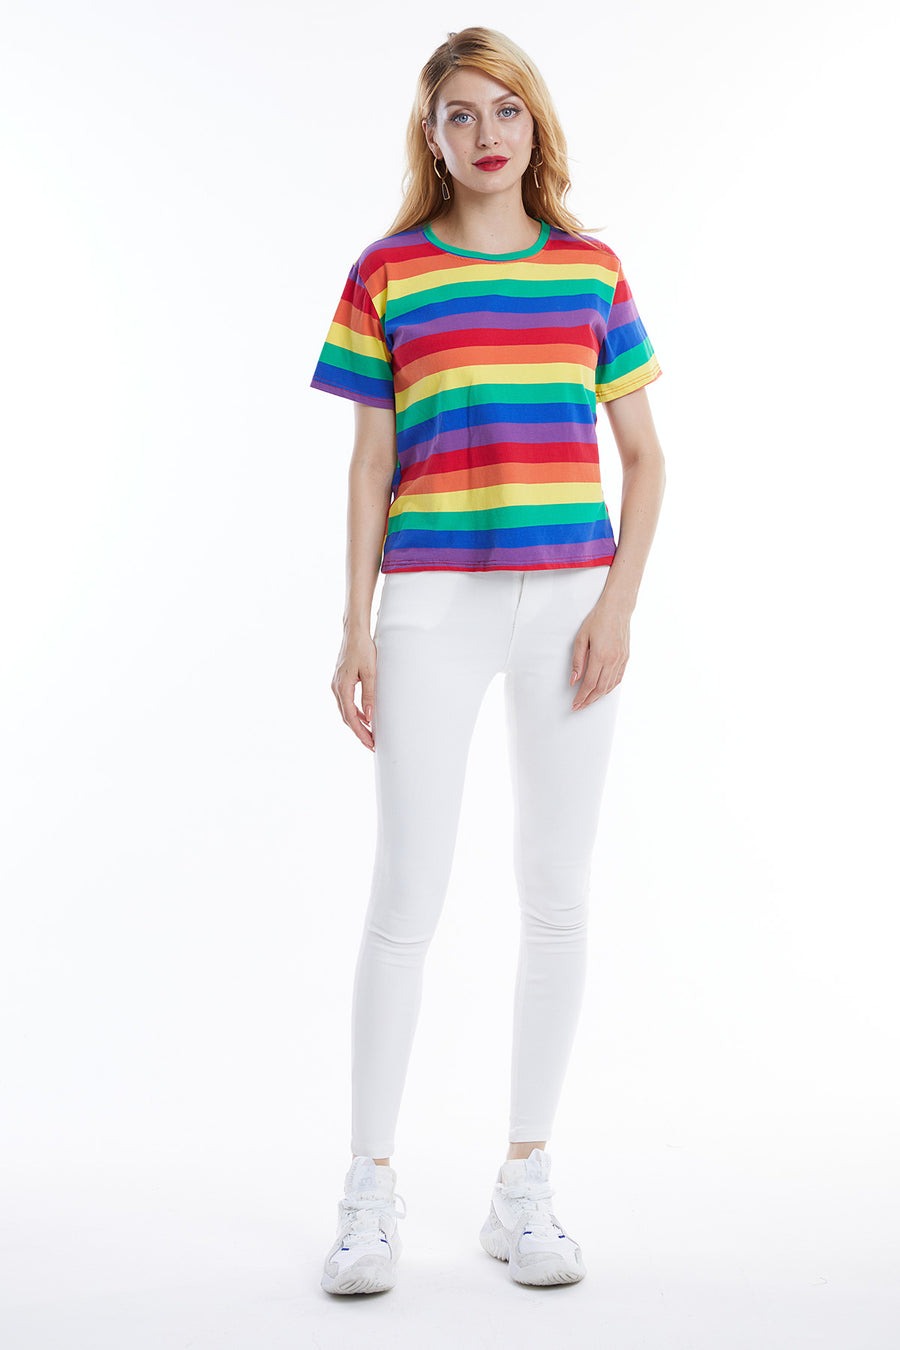 Mantra Pakistan Rainbow Stripe Tee | Western Wear